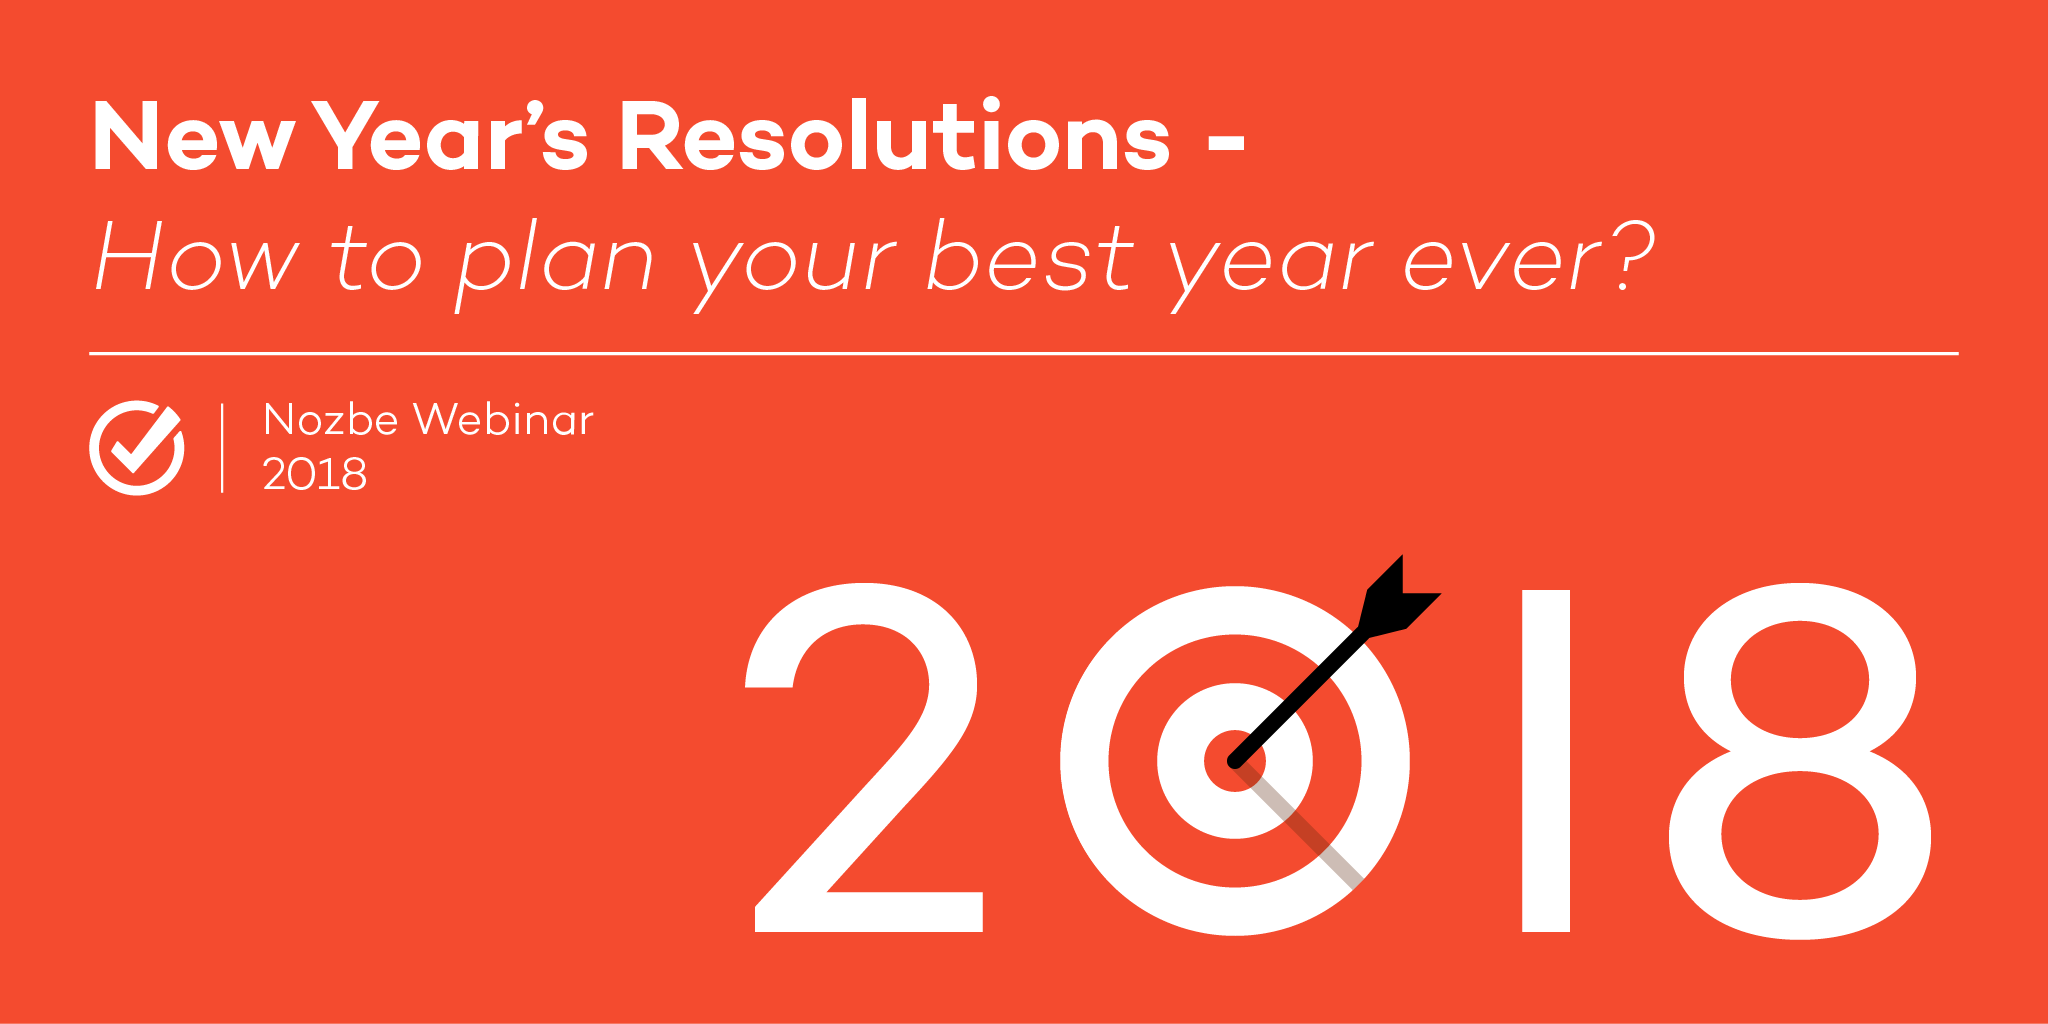 Webinar New Year's Resolutions